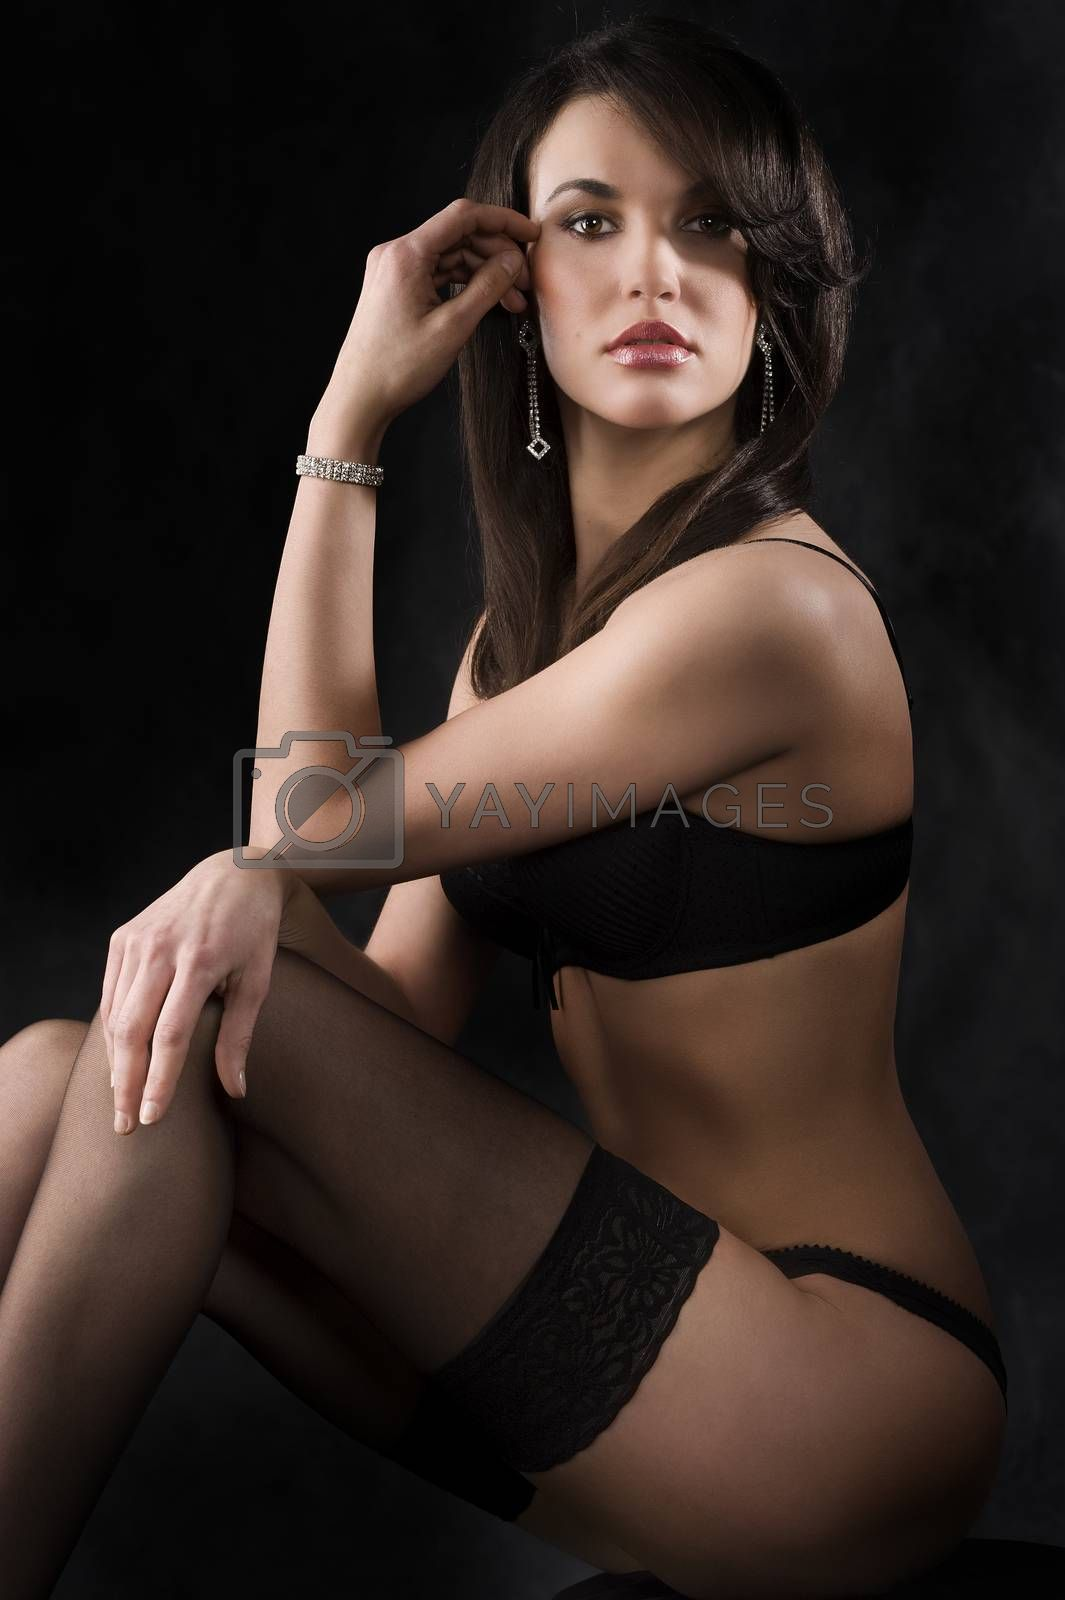 Royalty free image of sexy woman in black by fotoCD